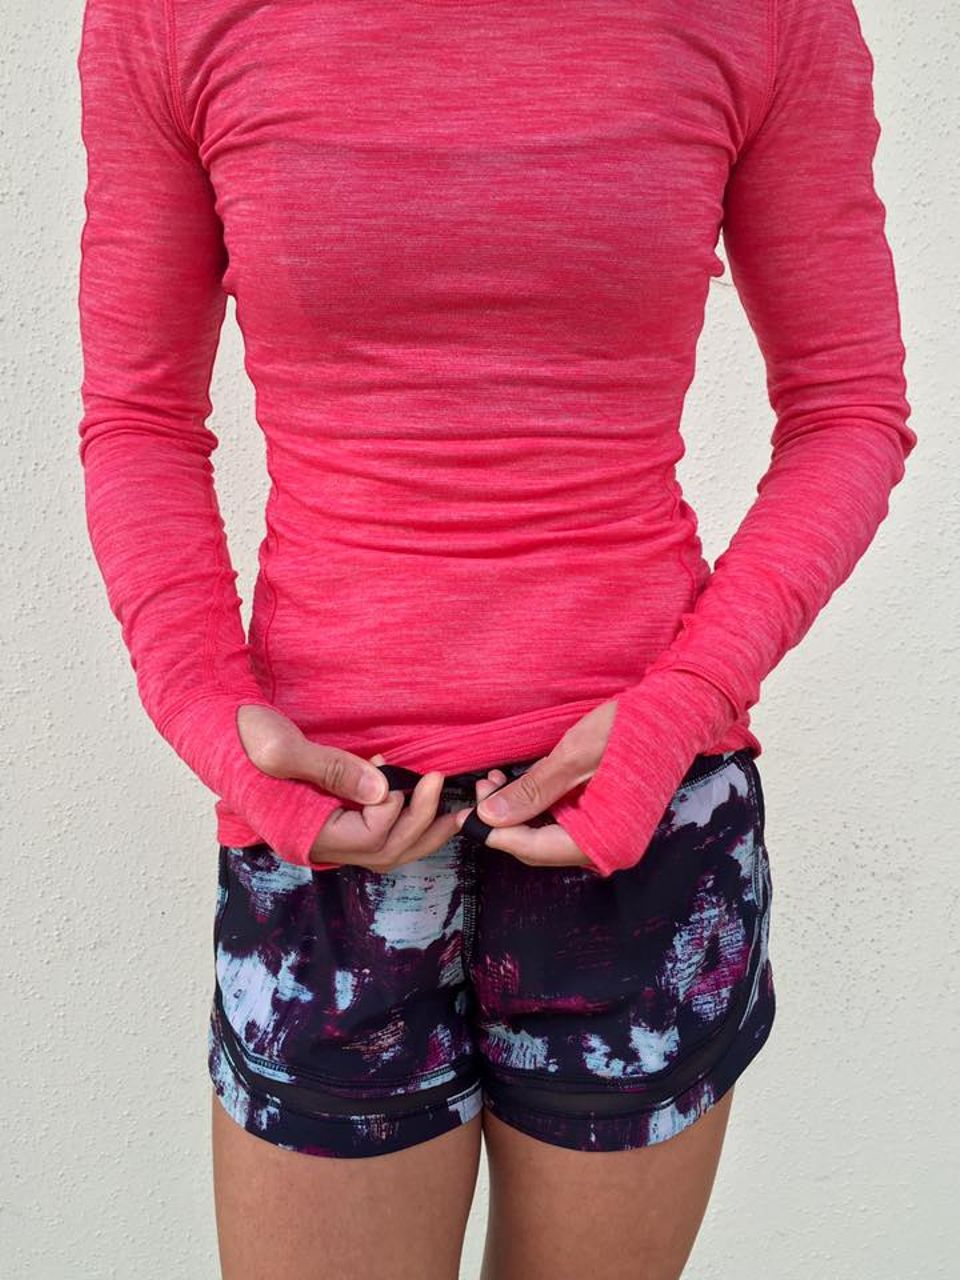 Lululemon Make A Move Short - Kara Blossom Multi